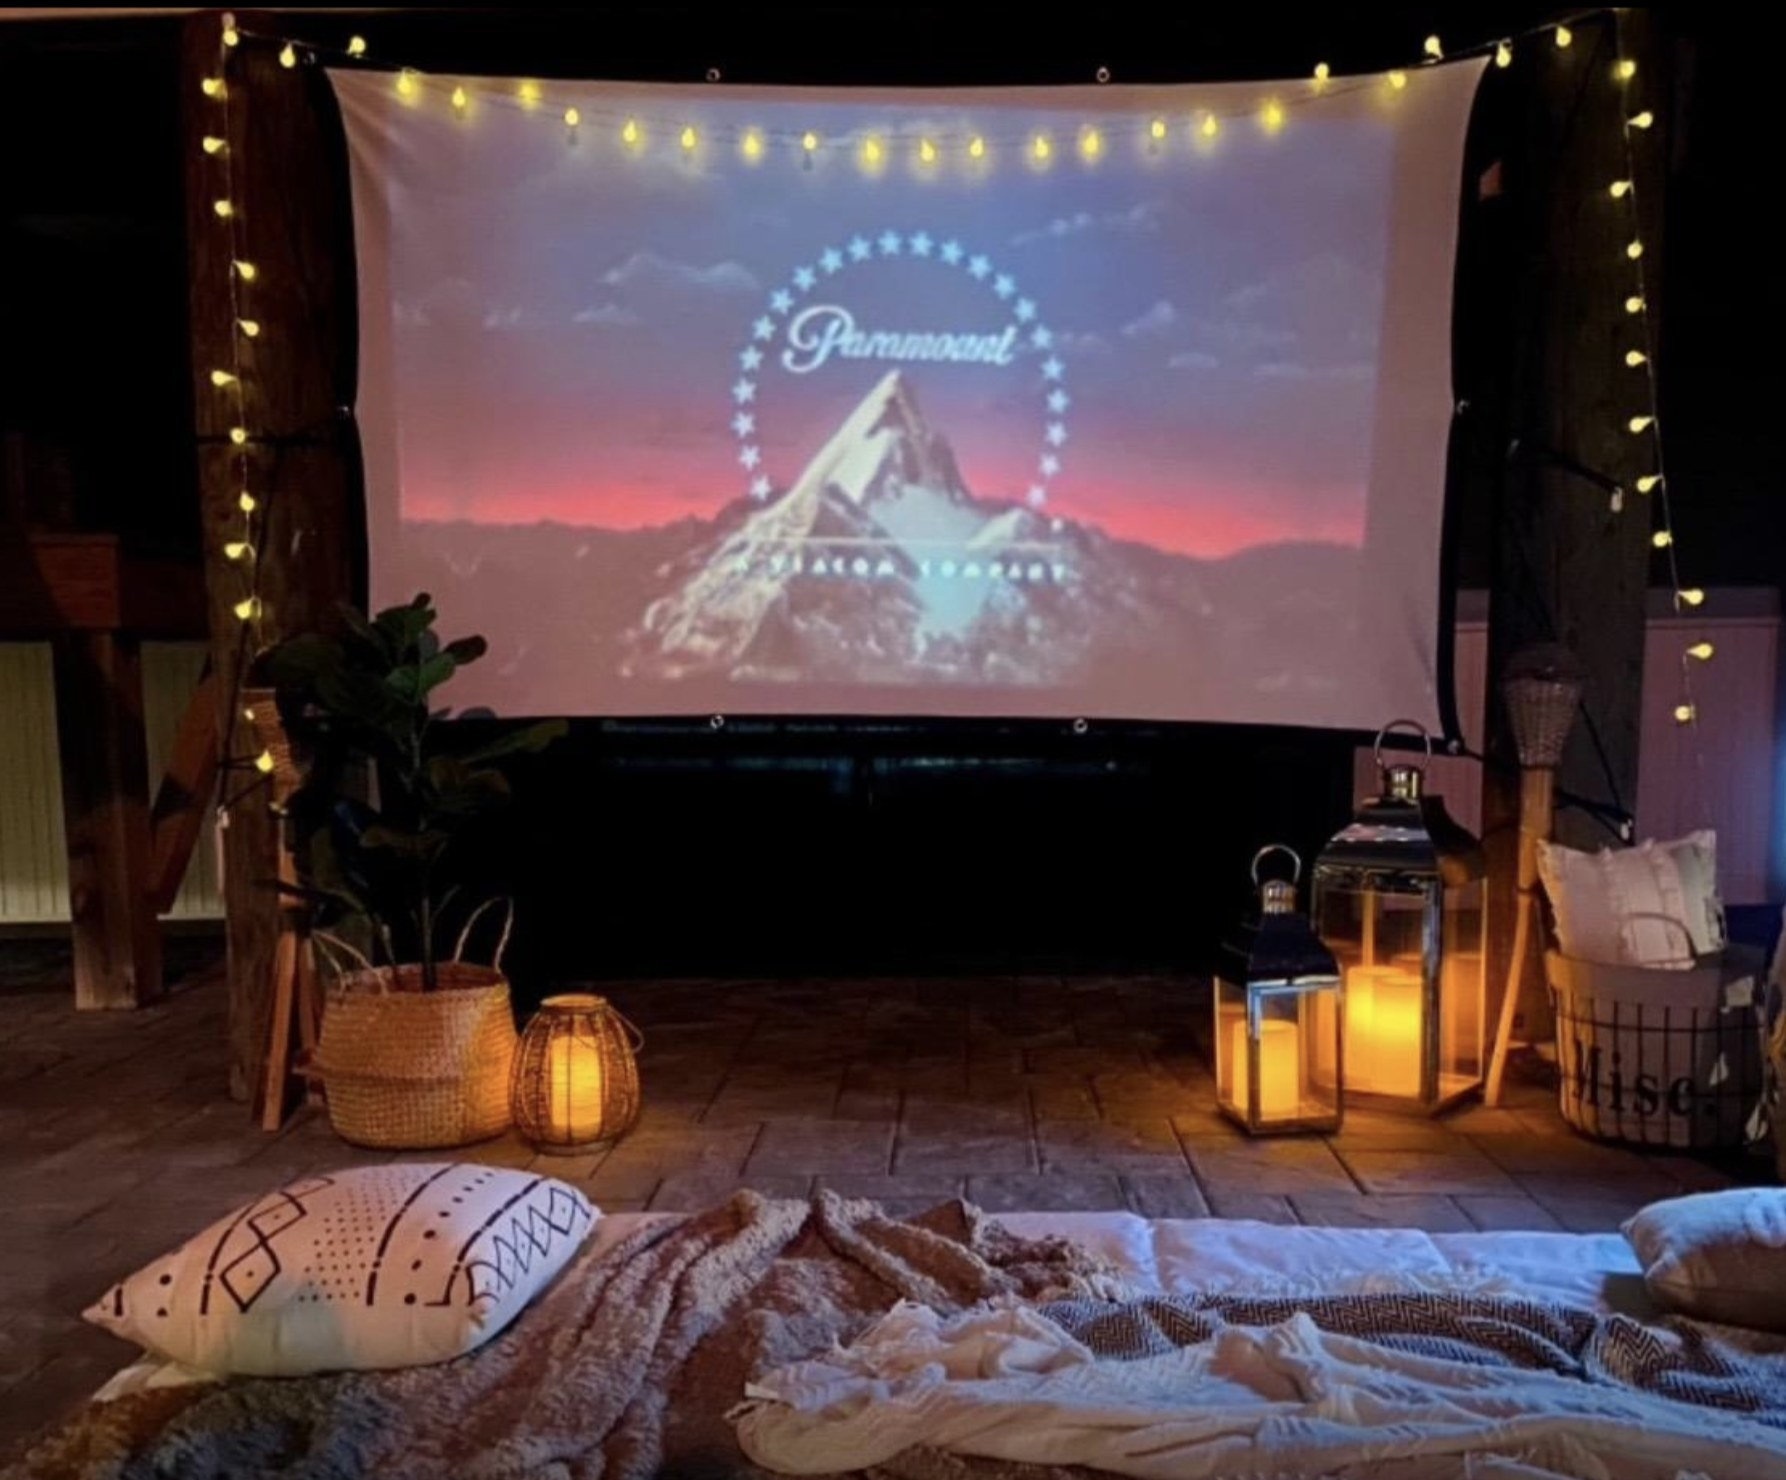 A movie projected on a screen